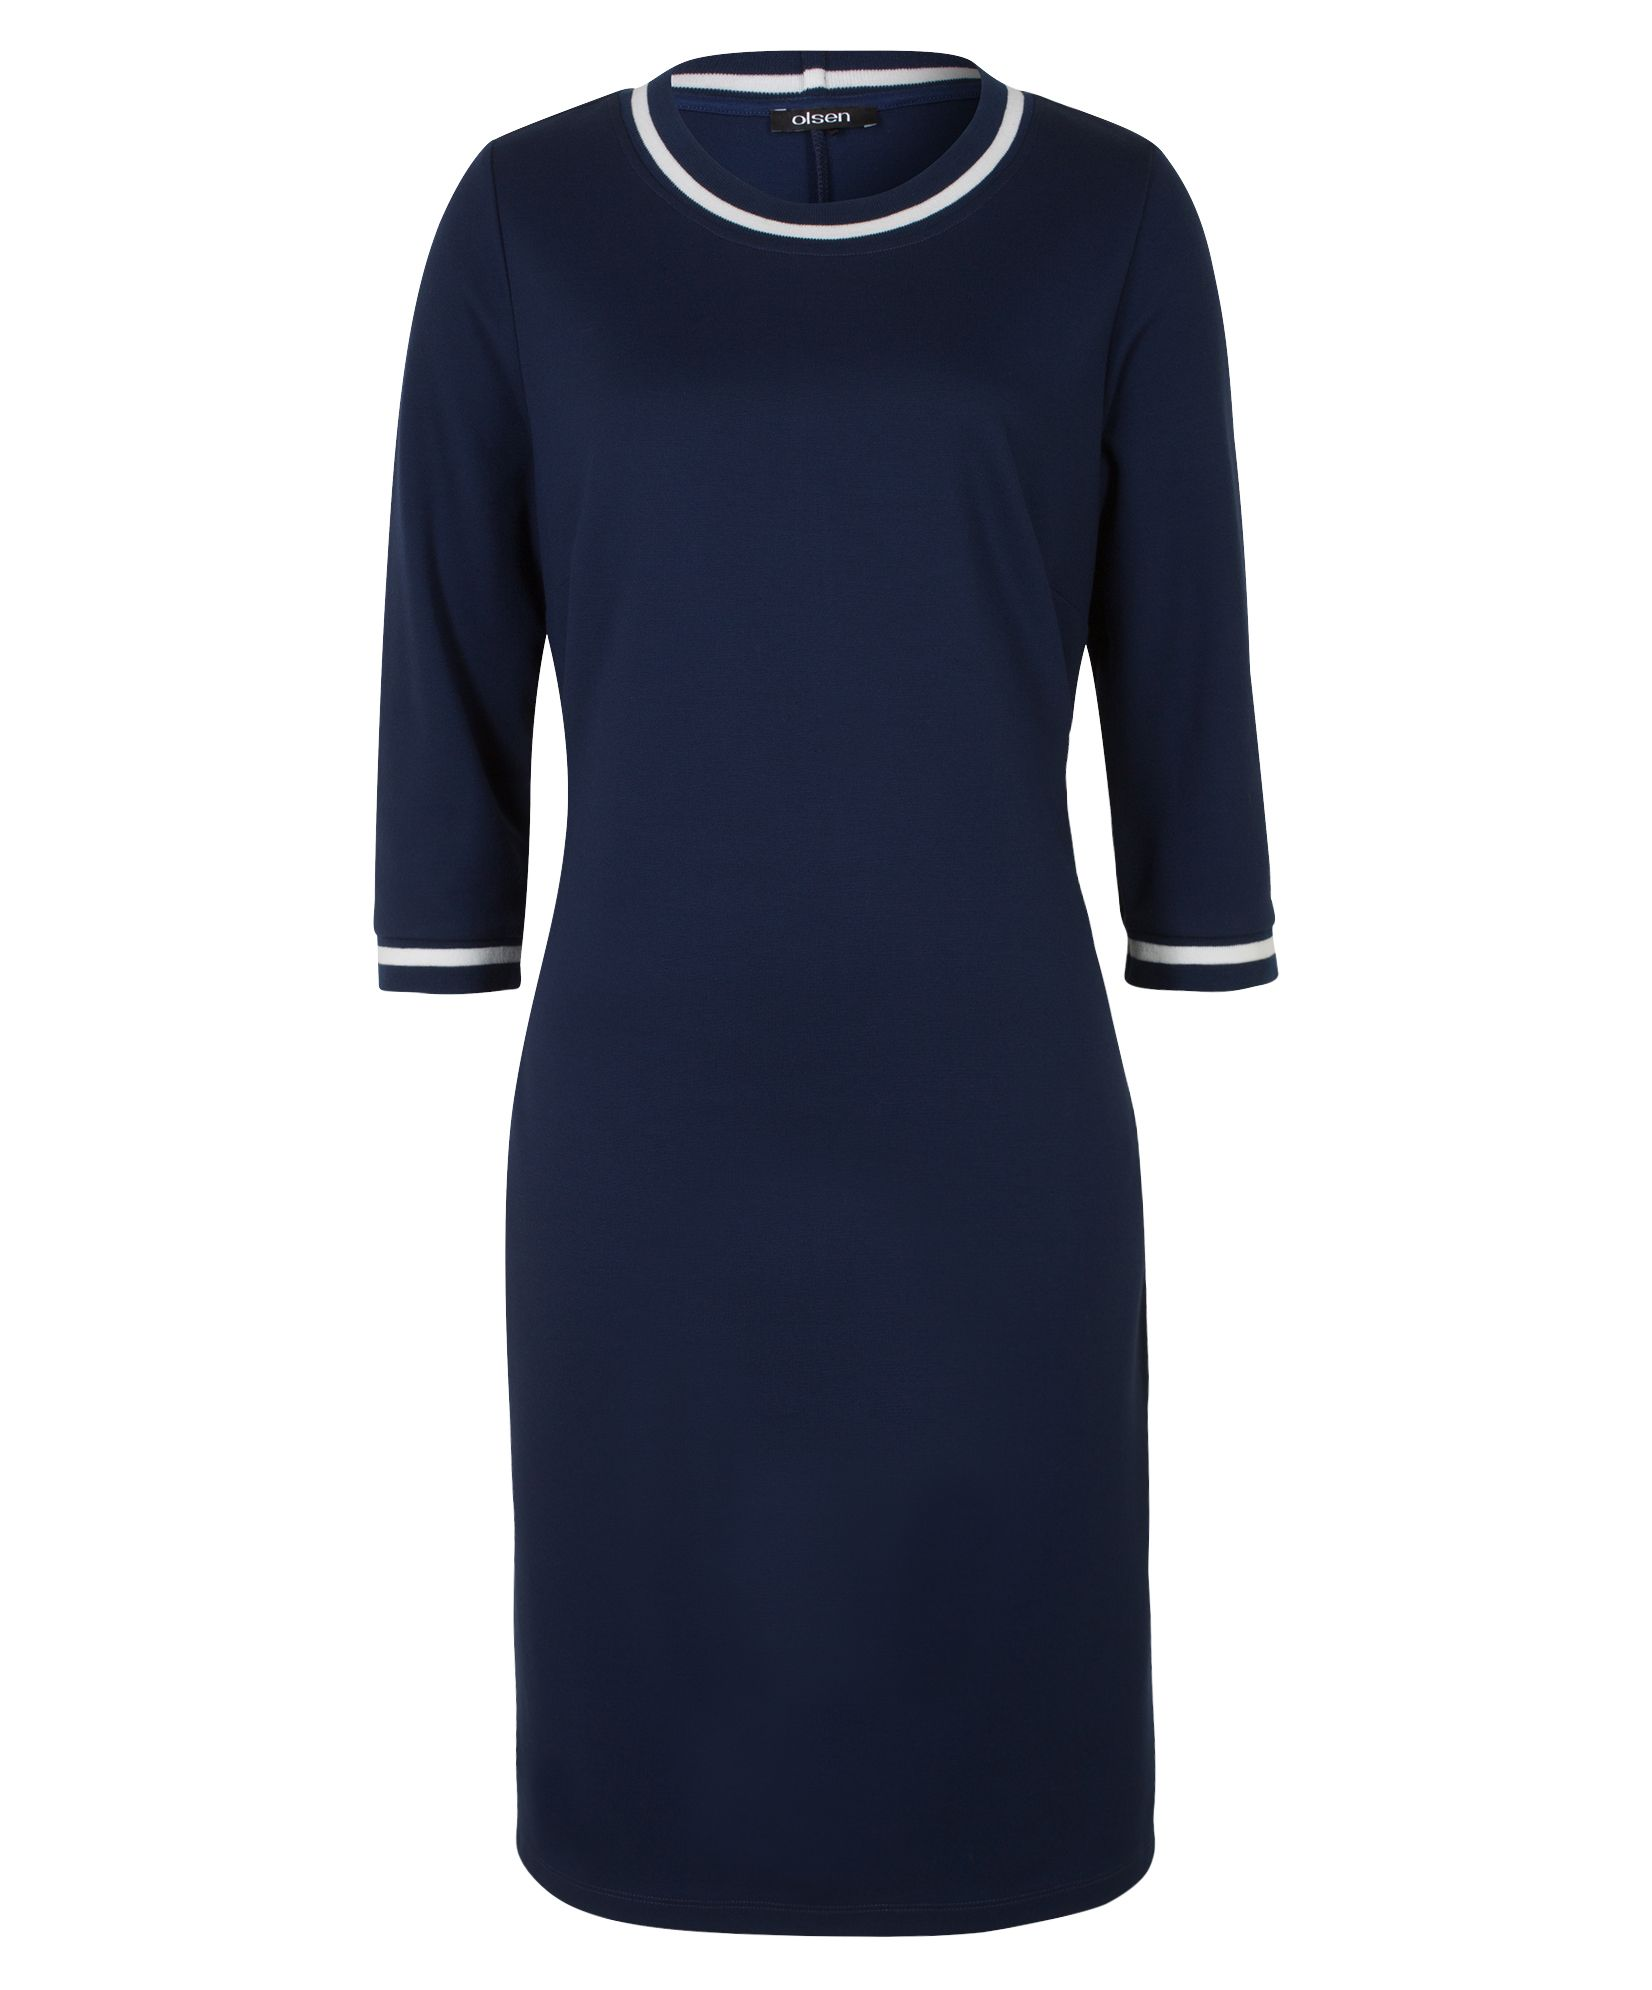 Olsen Sporty Dress, Pacific